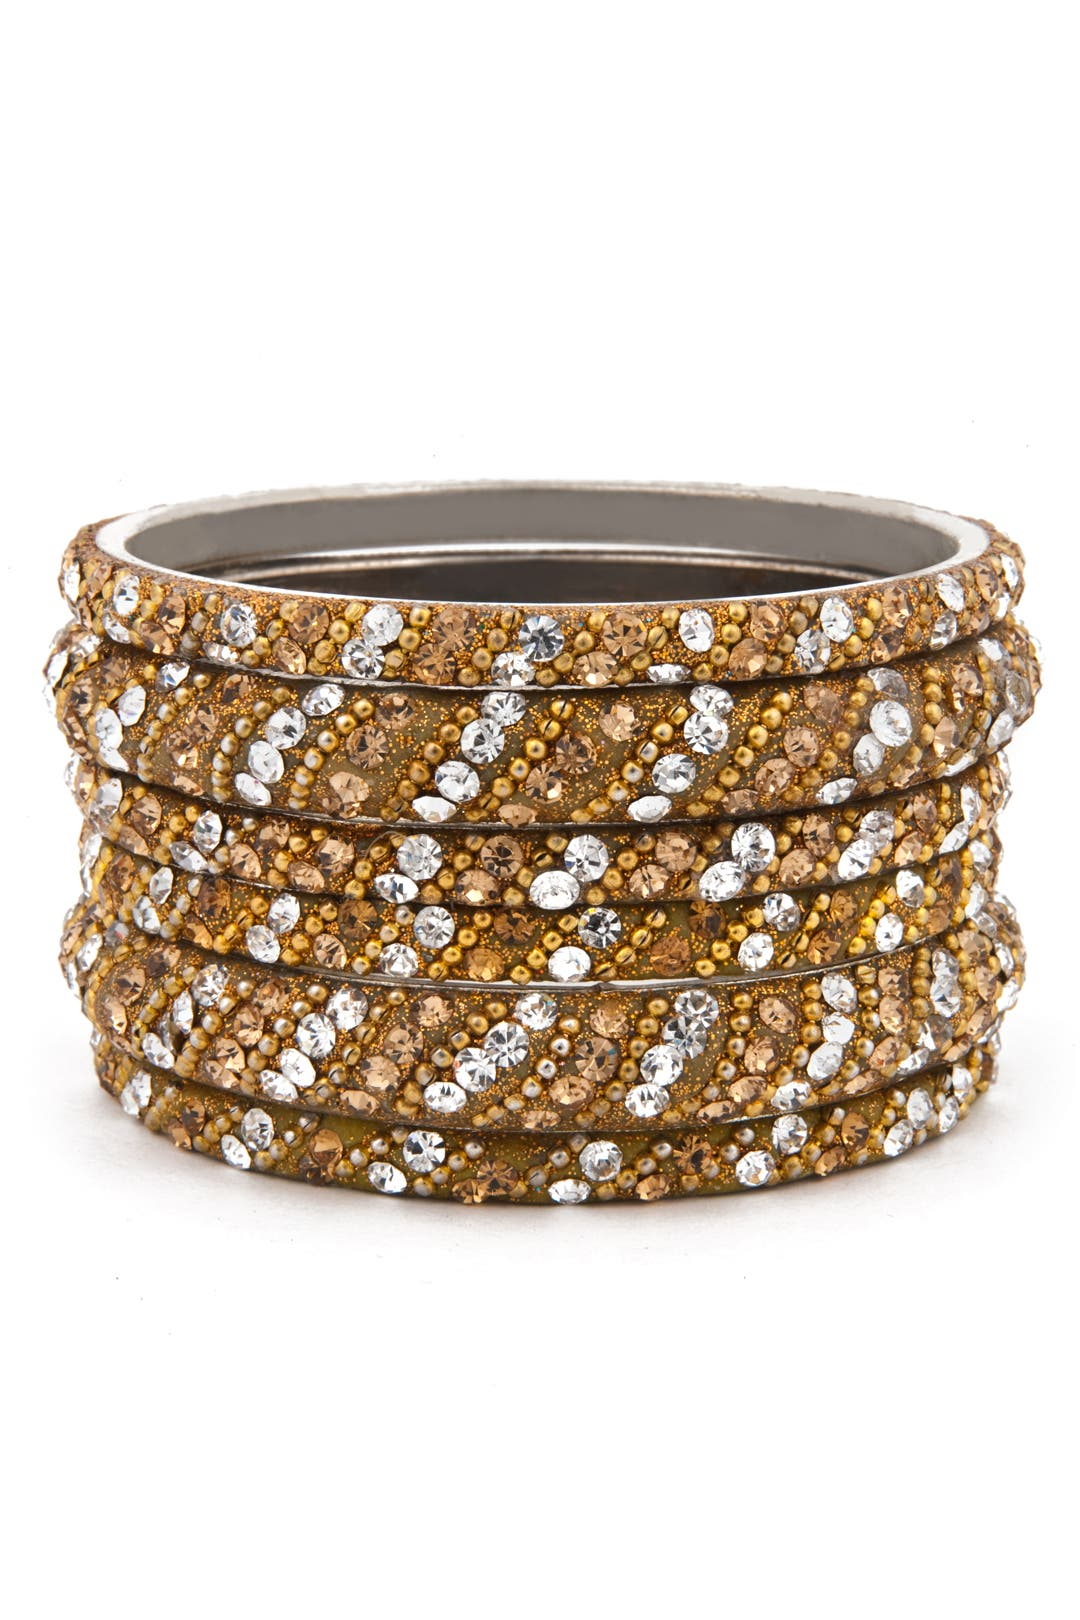 Gold Glitz Bangle Set by Chamak by Priya Kakkar